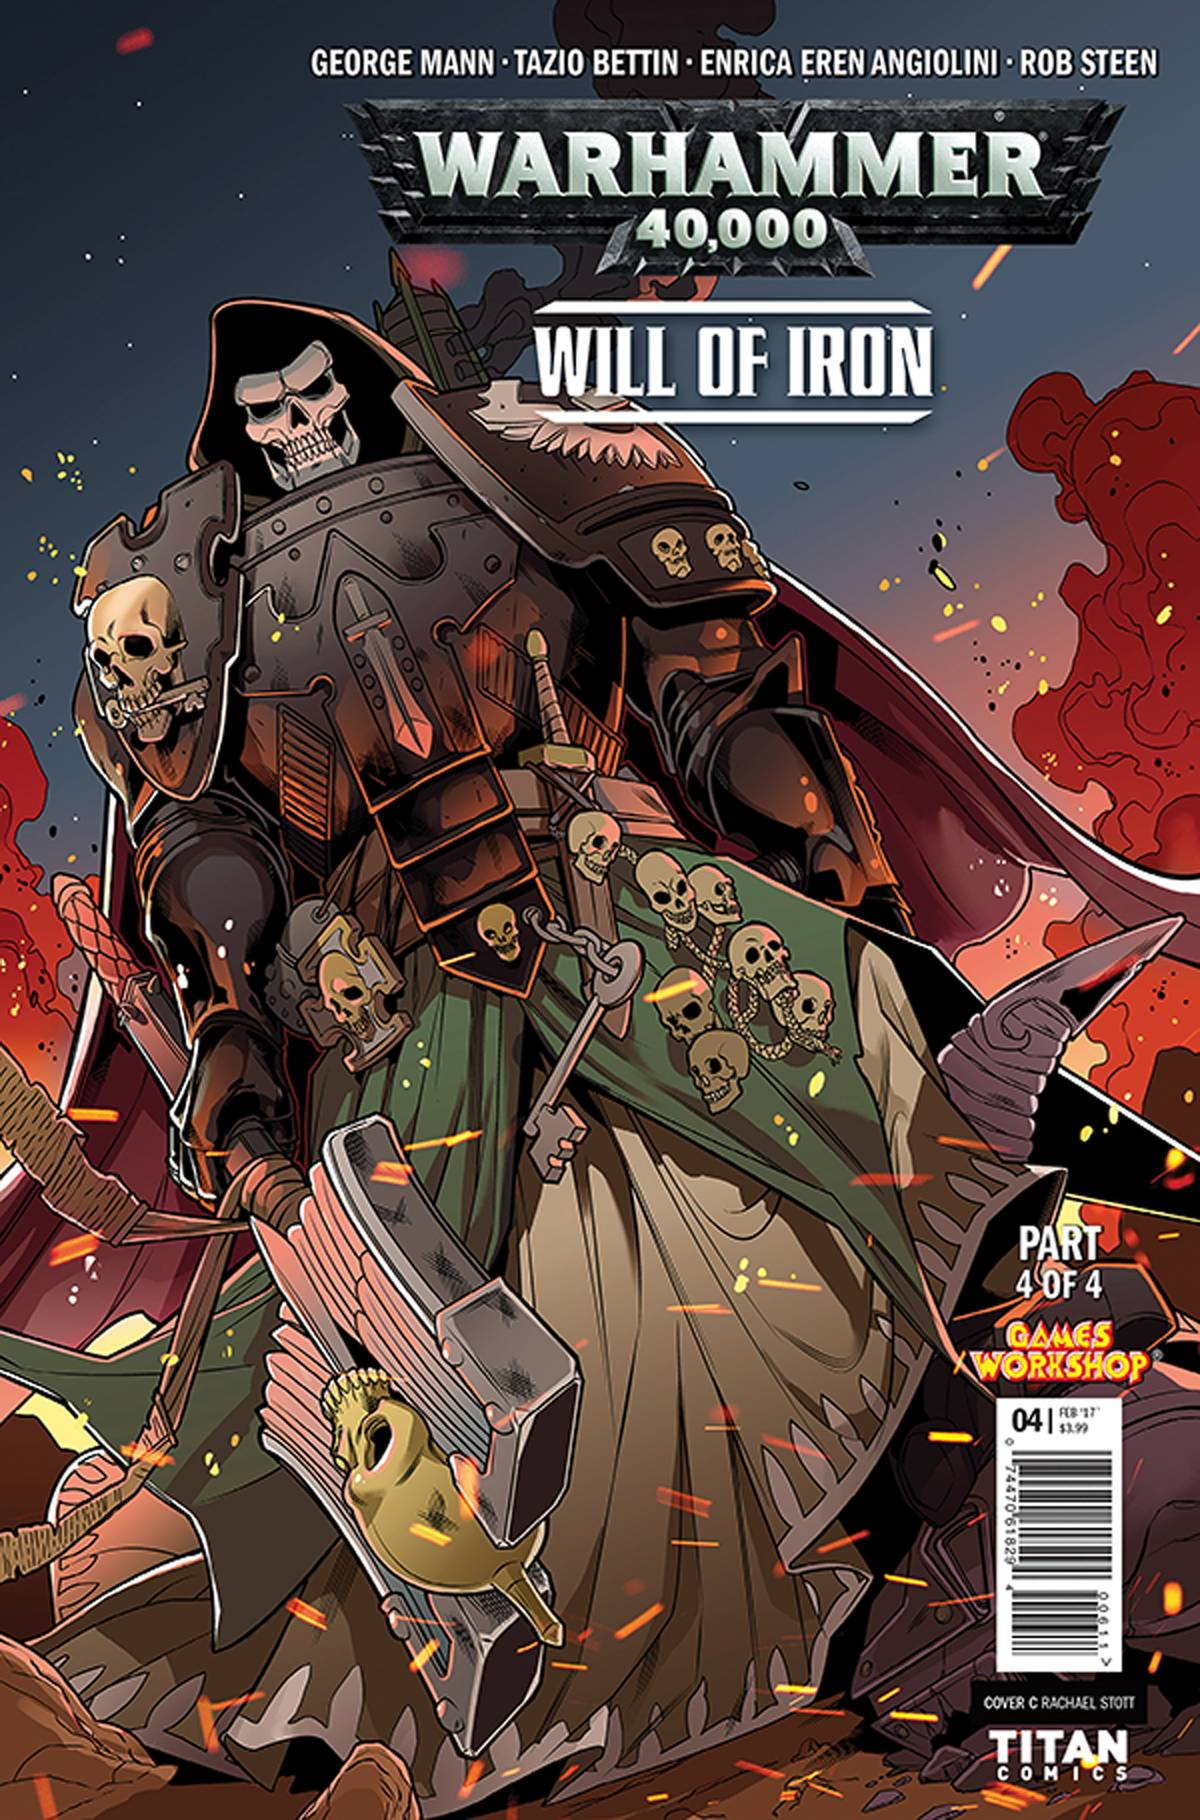 WARHAMMER 40000 WILL OF IRON #4 (OF 4) CVR C STOTT